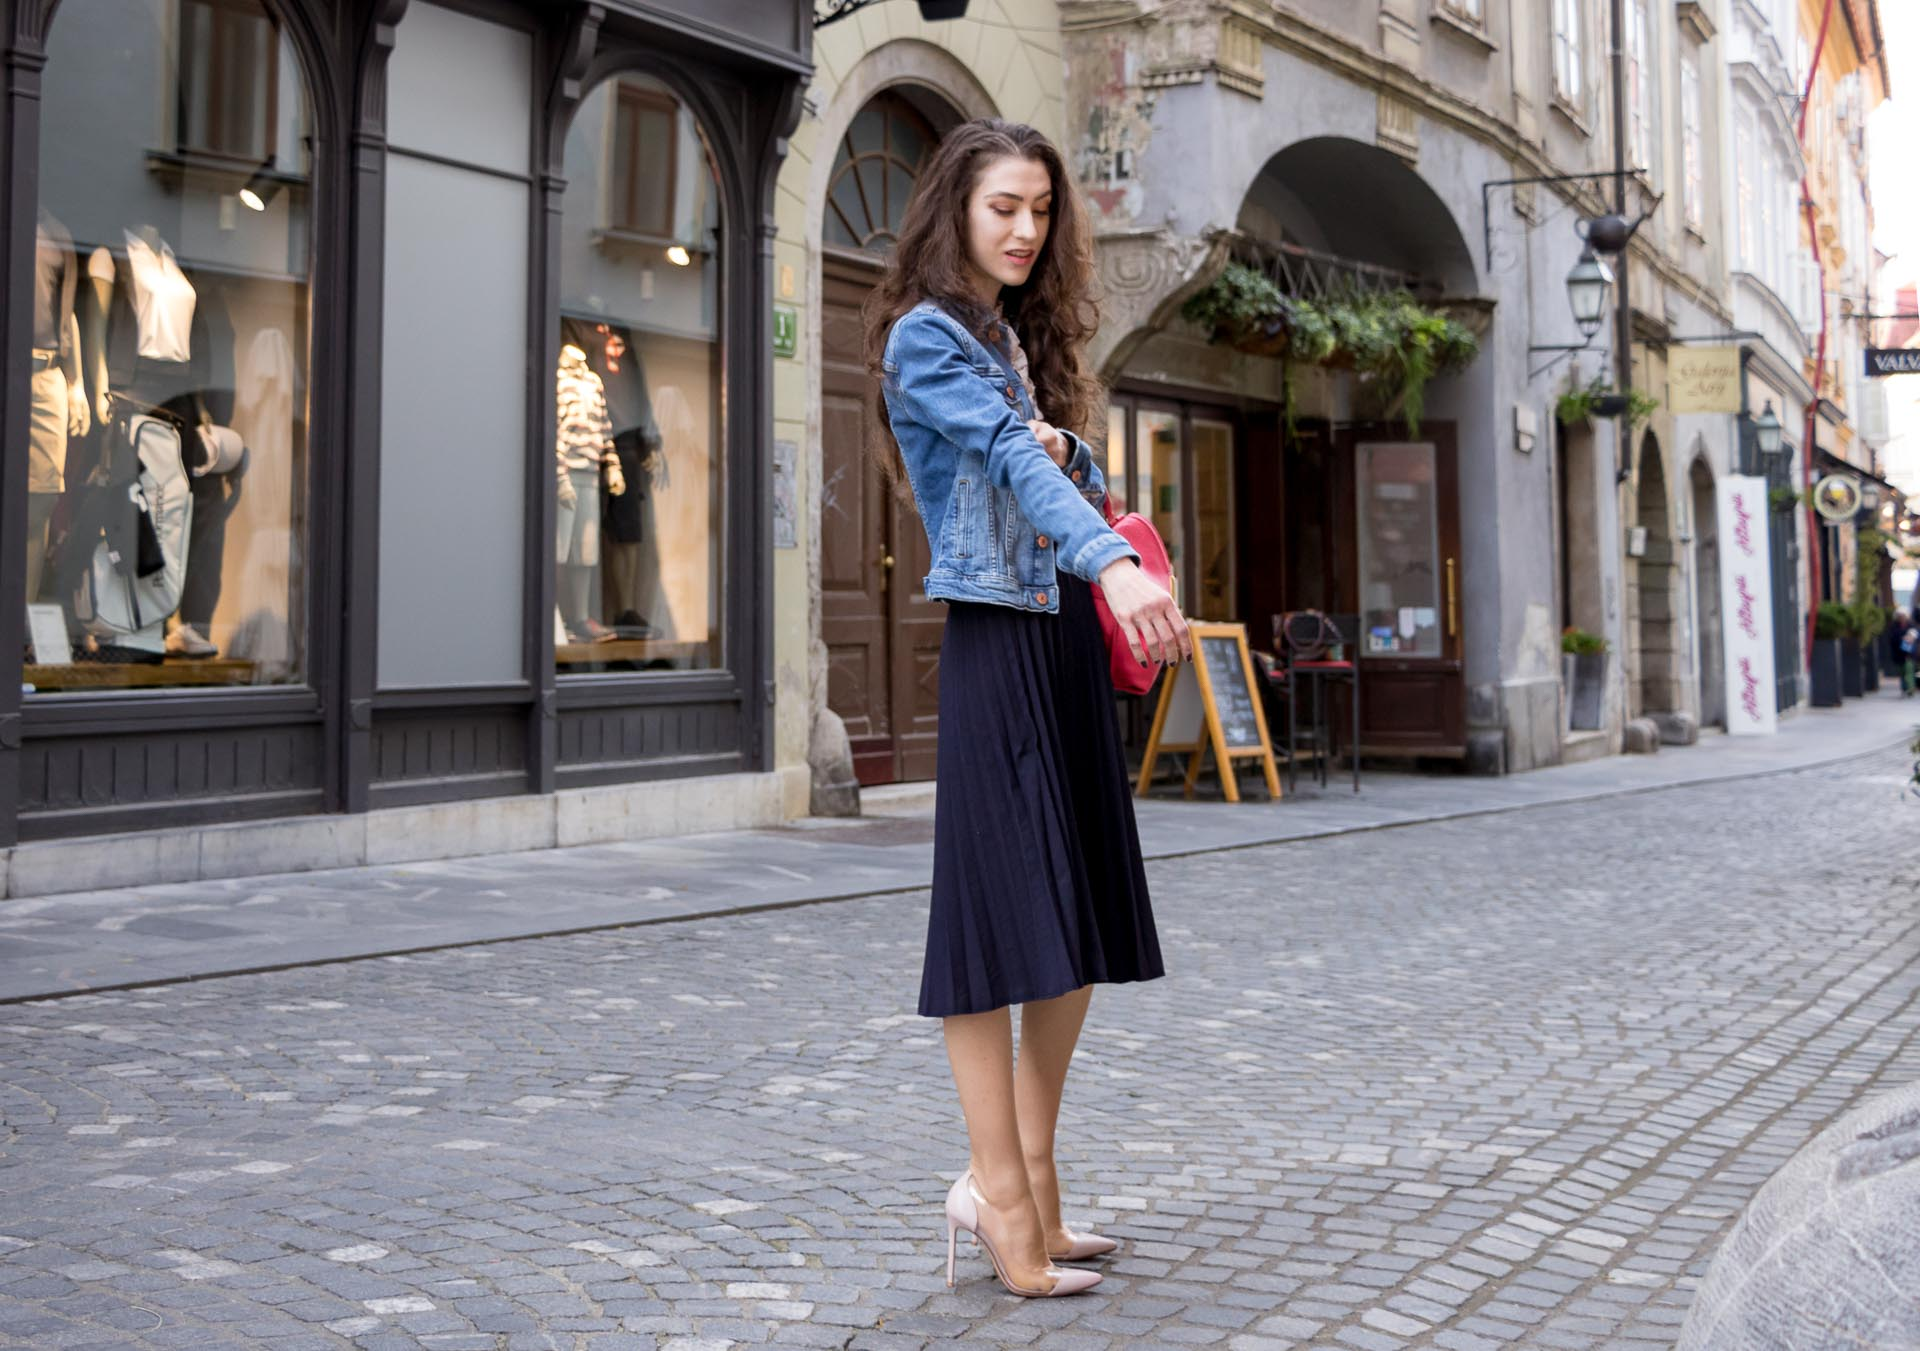 Veronika Lipar Fashion Blogger of Brunette from Wall Street dressed in H&M denim jacket, floral blouse, midi pleated skirt, Gianvito Rossi plexi pumps, pink top handle bag while rolling up the sleeves of denim jacket